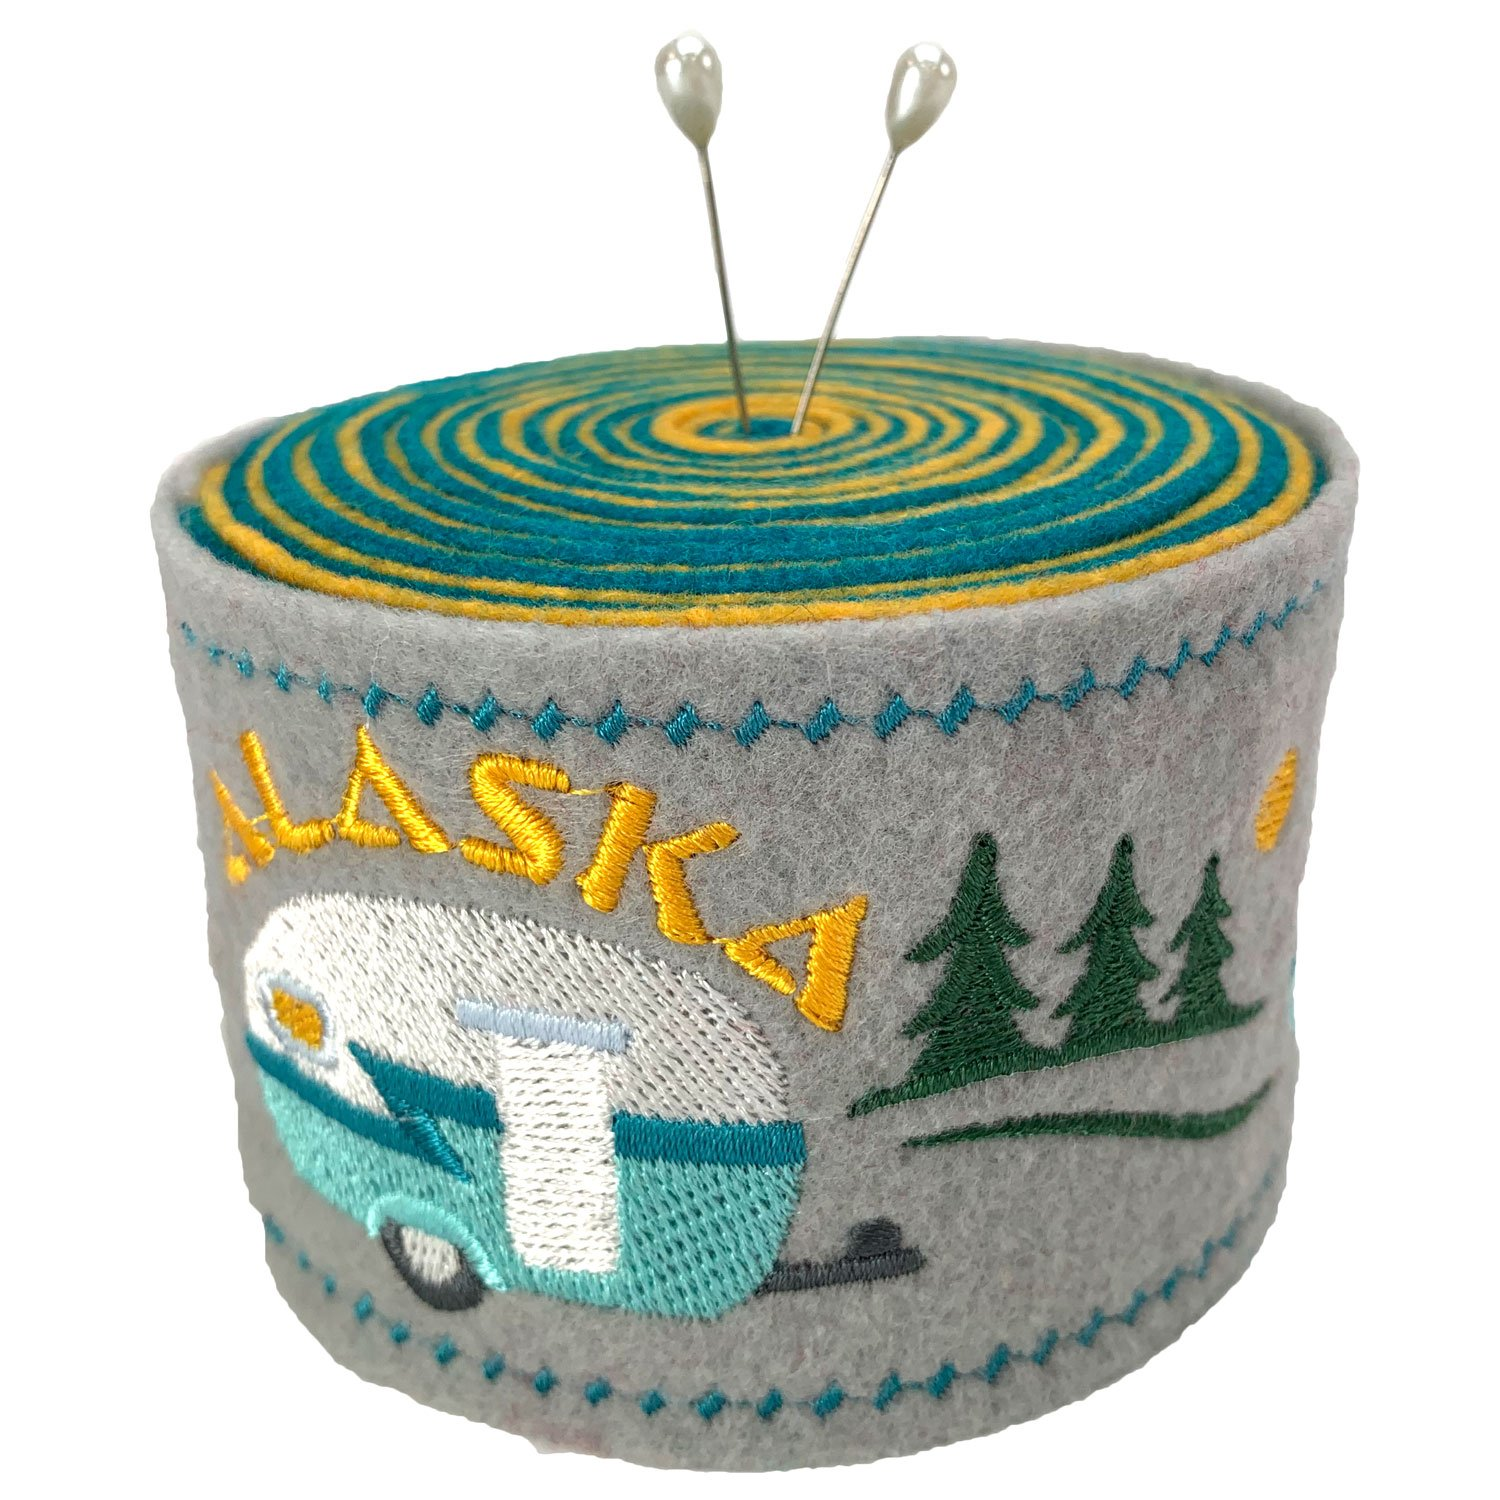 Embroidered Felt Pincushion Camper Alaska